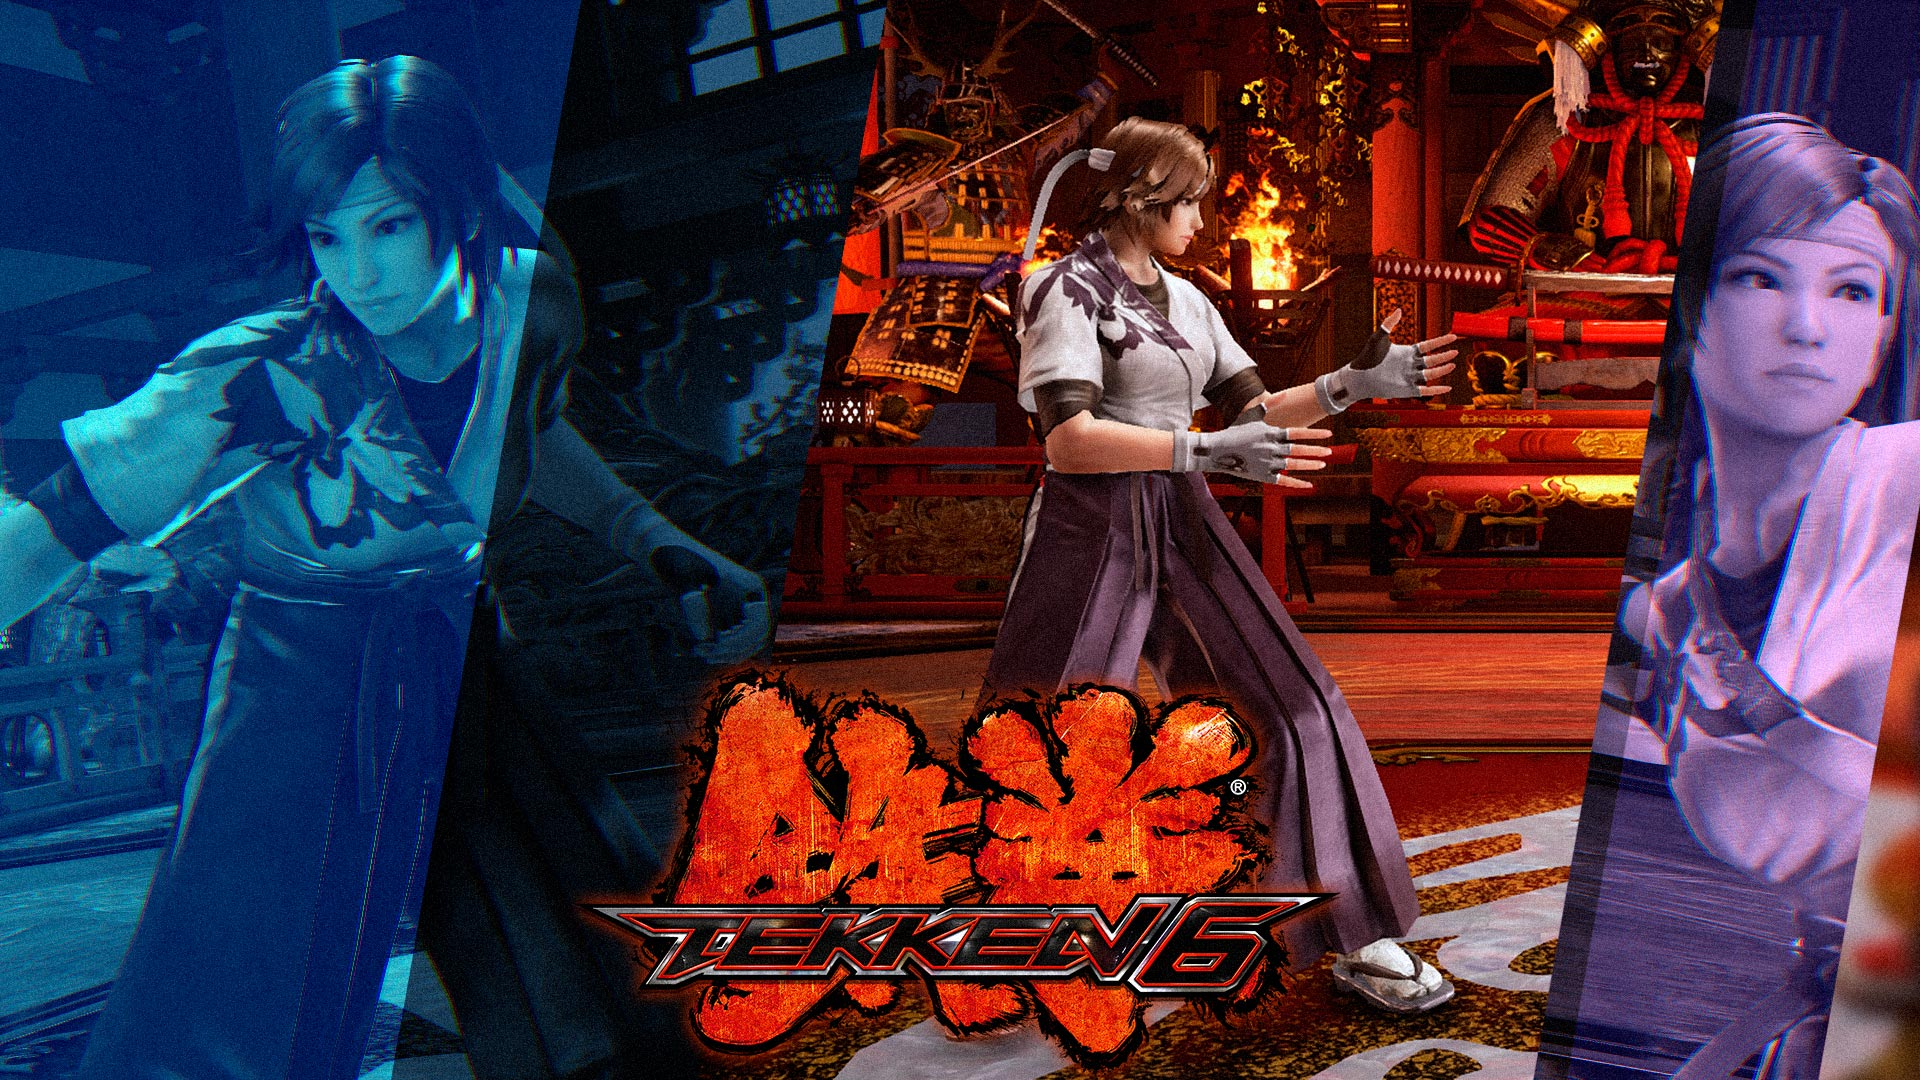 Tekken 7 PC mods add Dragon Ball Z and legacy Tekken looks to the game 6 out of 6 image gallery